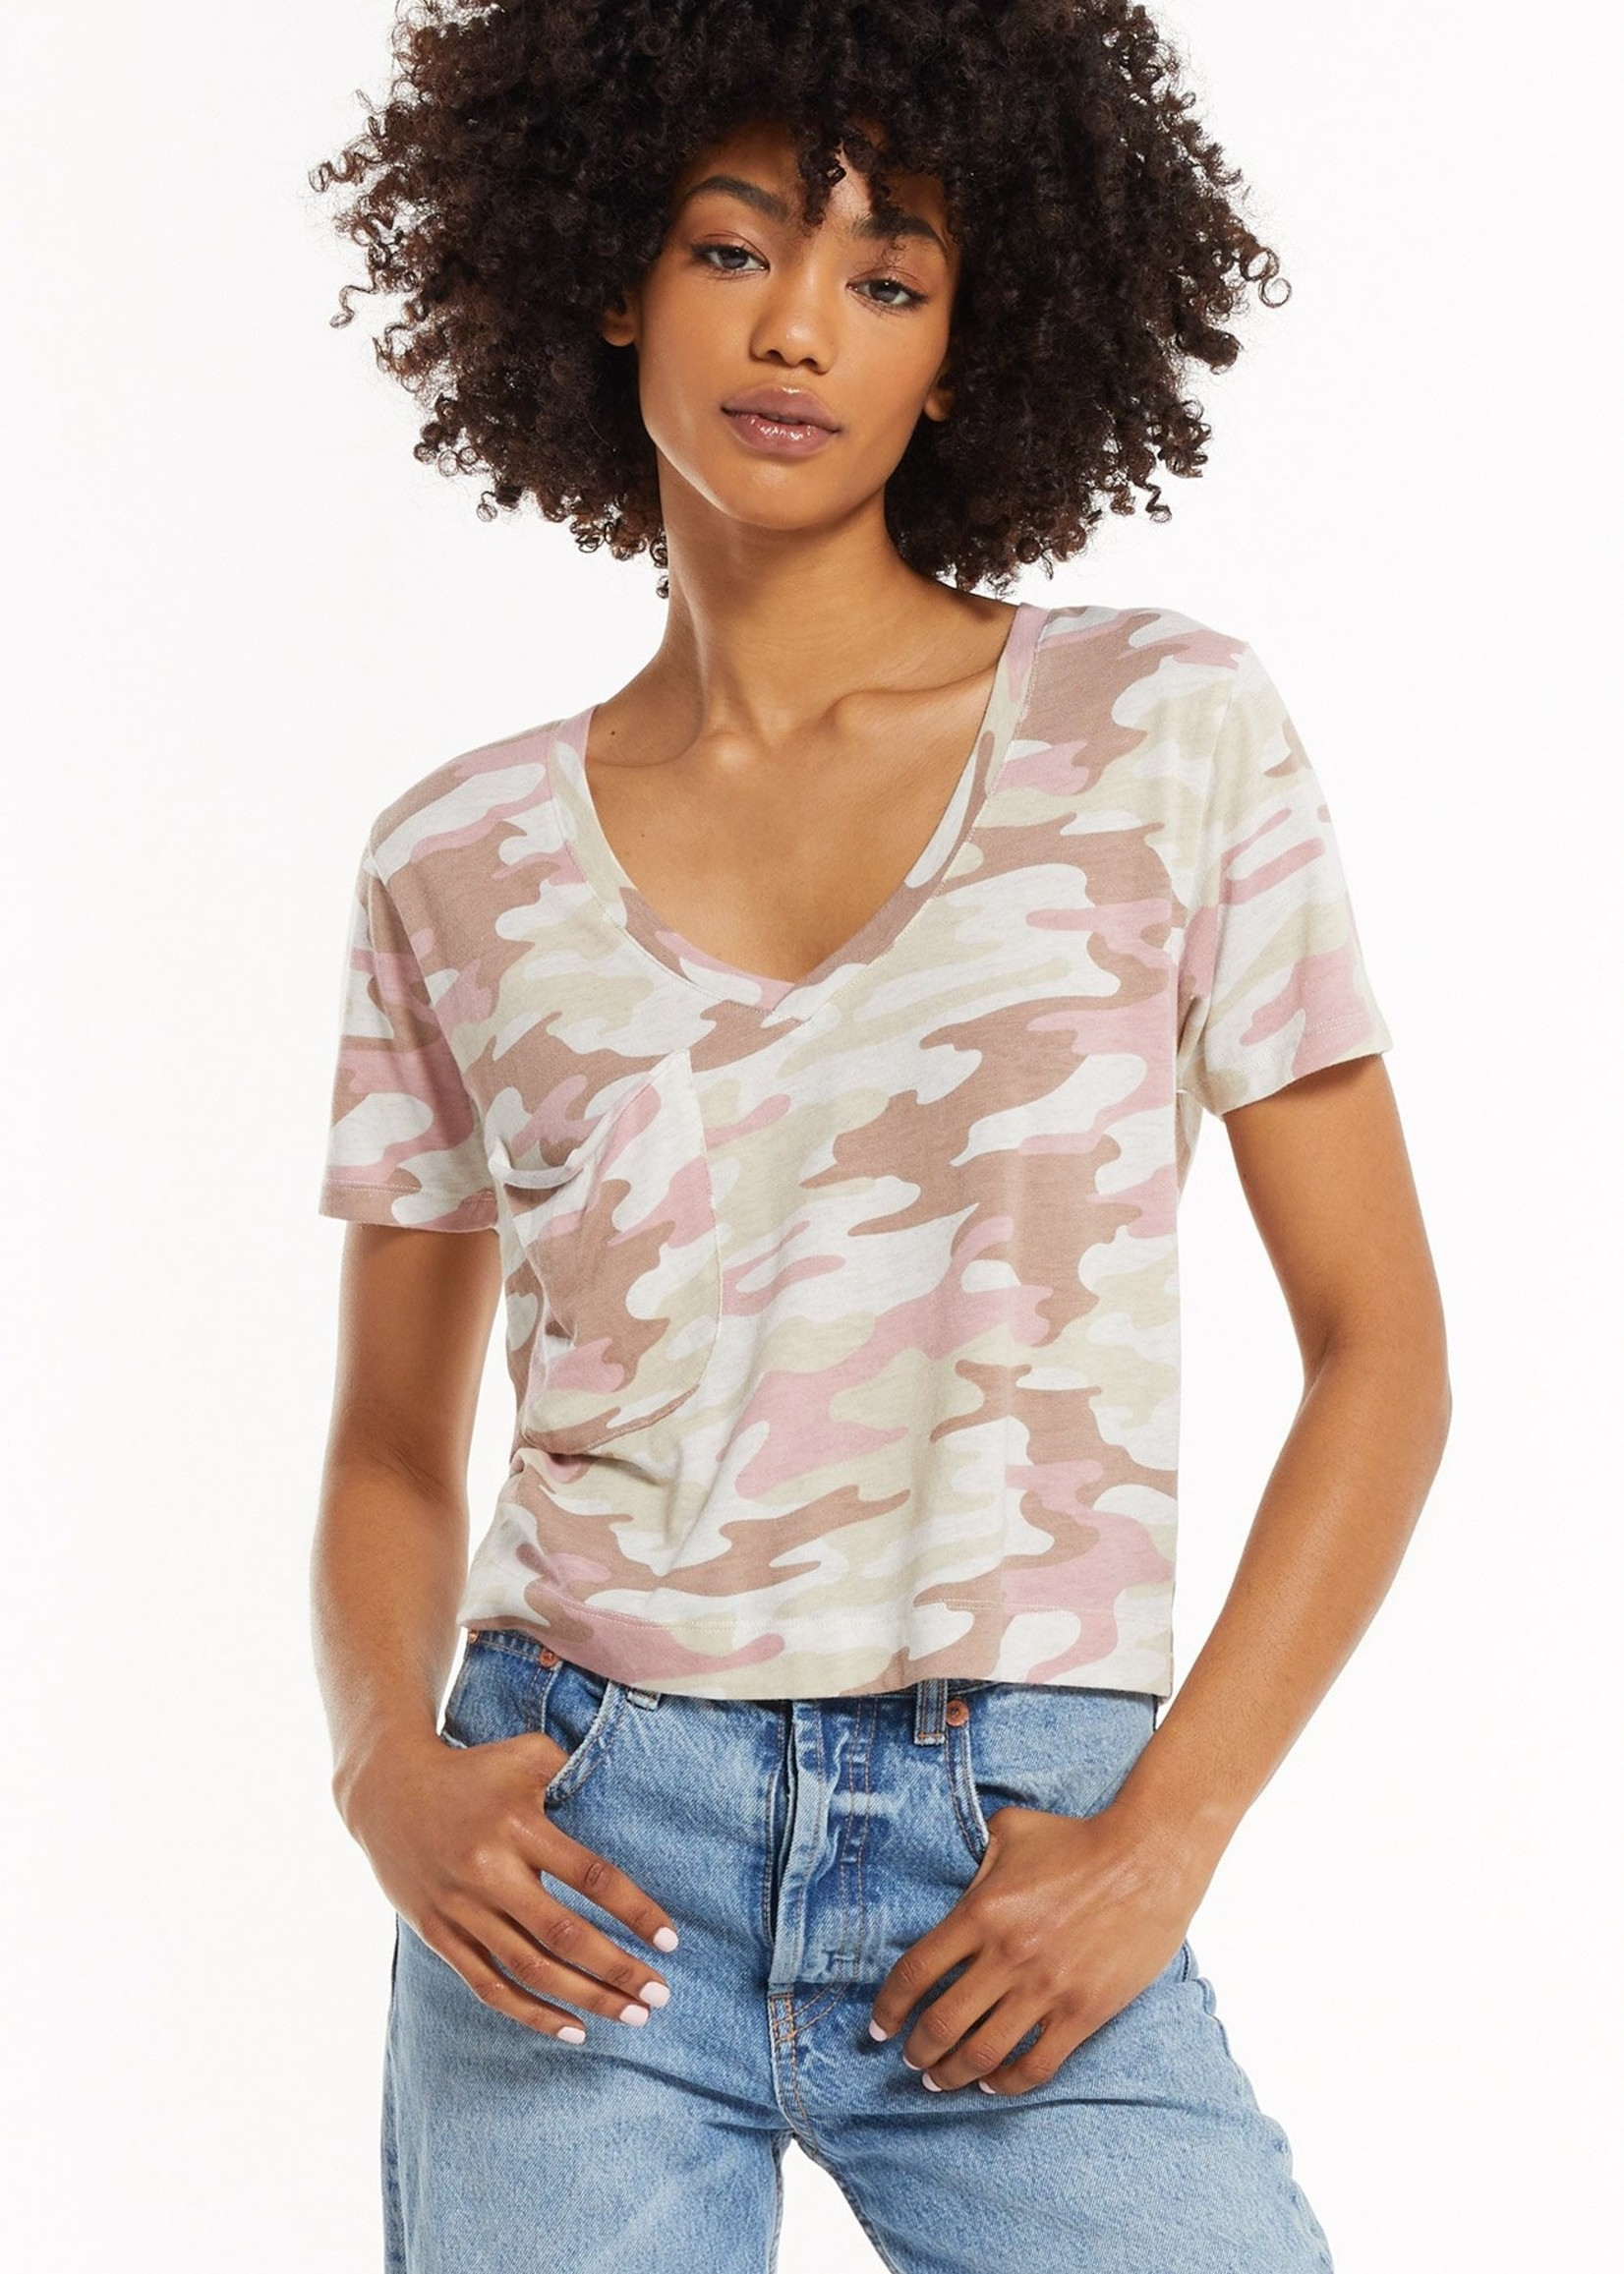 Z SUPPLY Z SUPPLY THE CAMO CLASSIC SKIMMER TEE